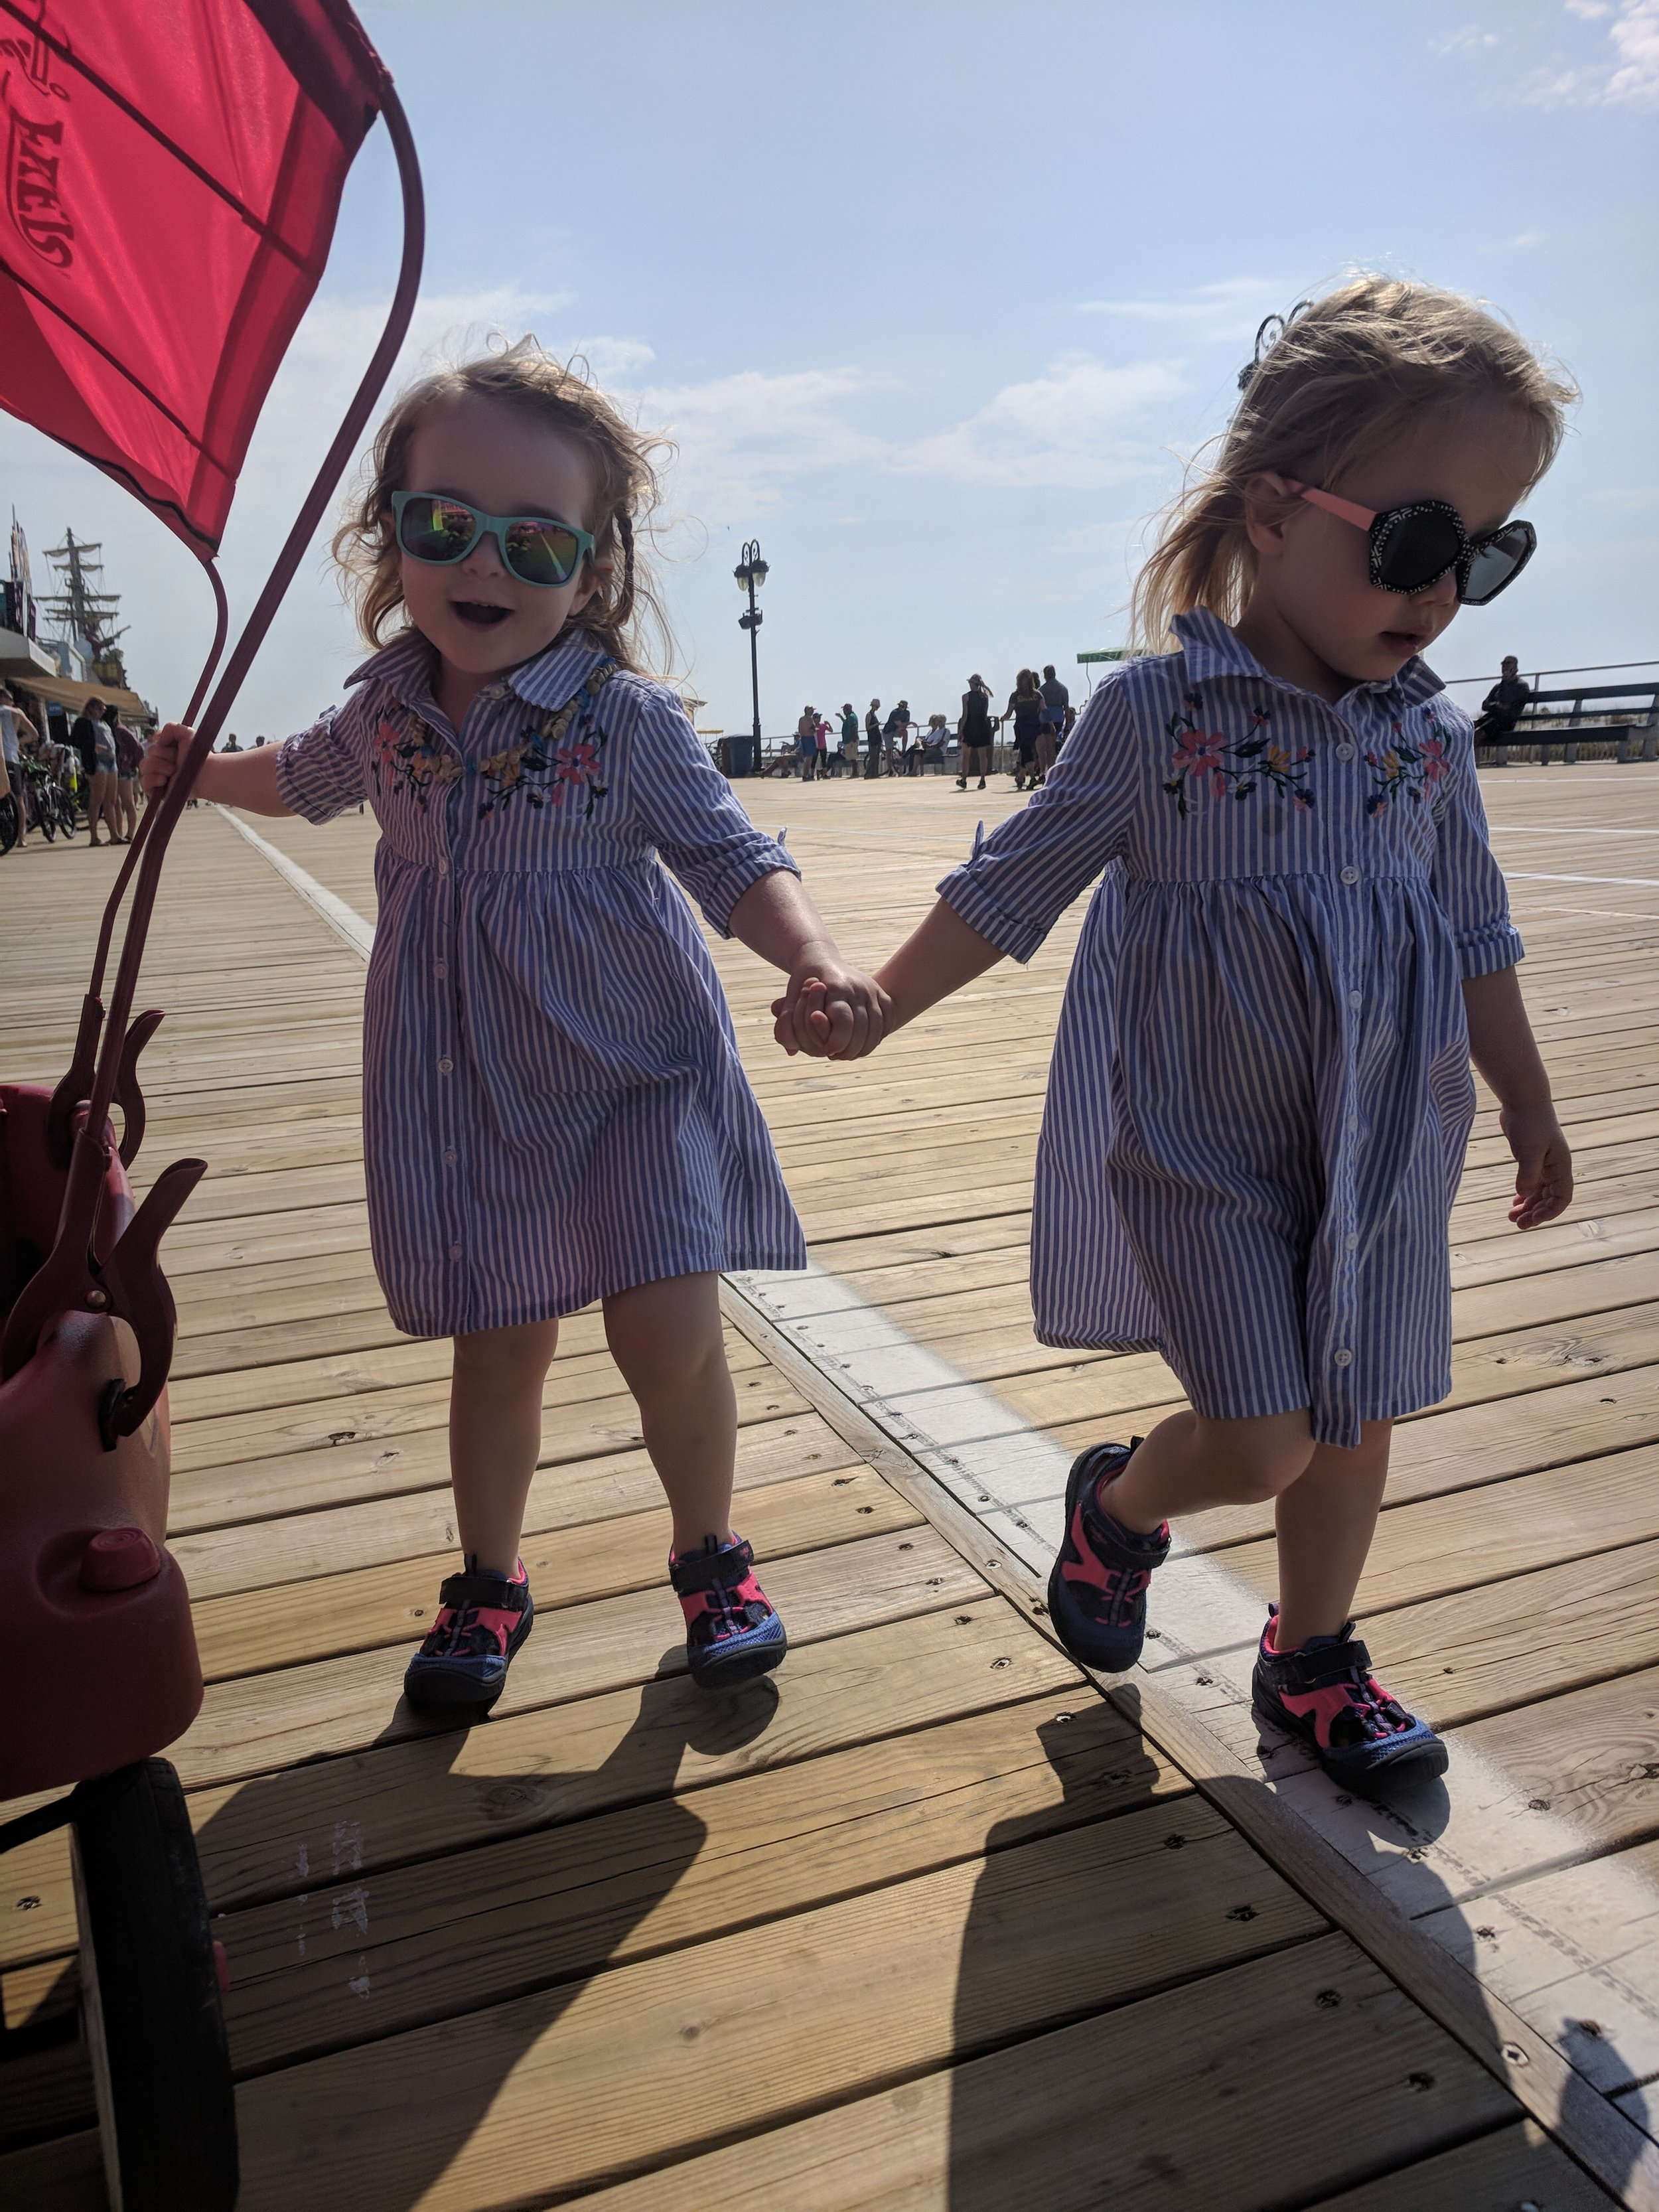 A wagon like this with a canopy can save you from carrying your kids all the way down the boardwalk. Unless they decide they won't go in it. Because toddlers. But at least my twins look cute, right?